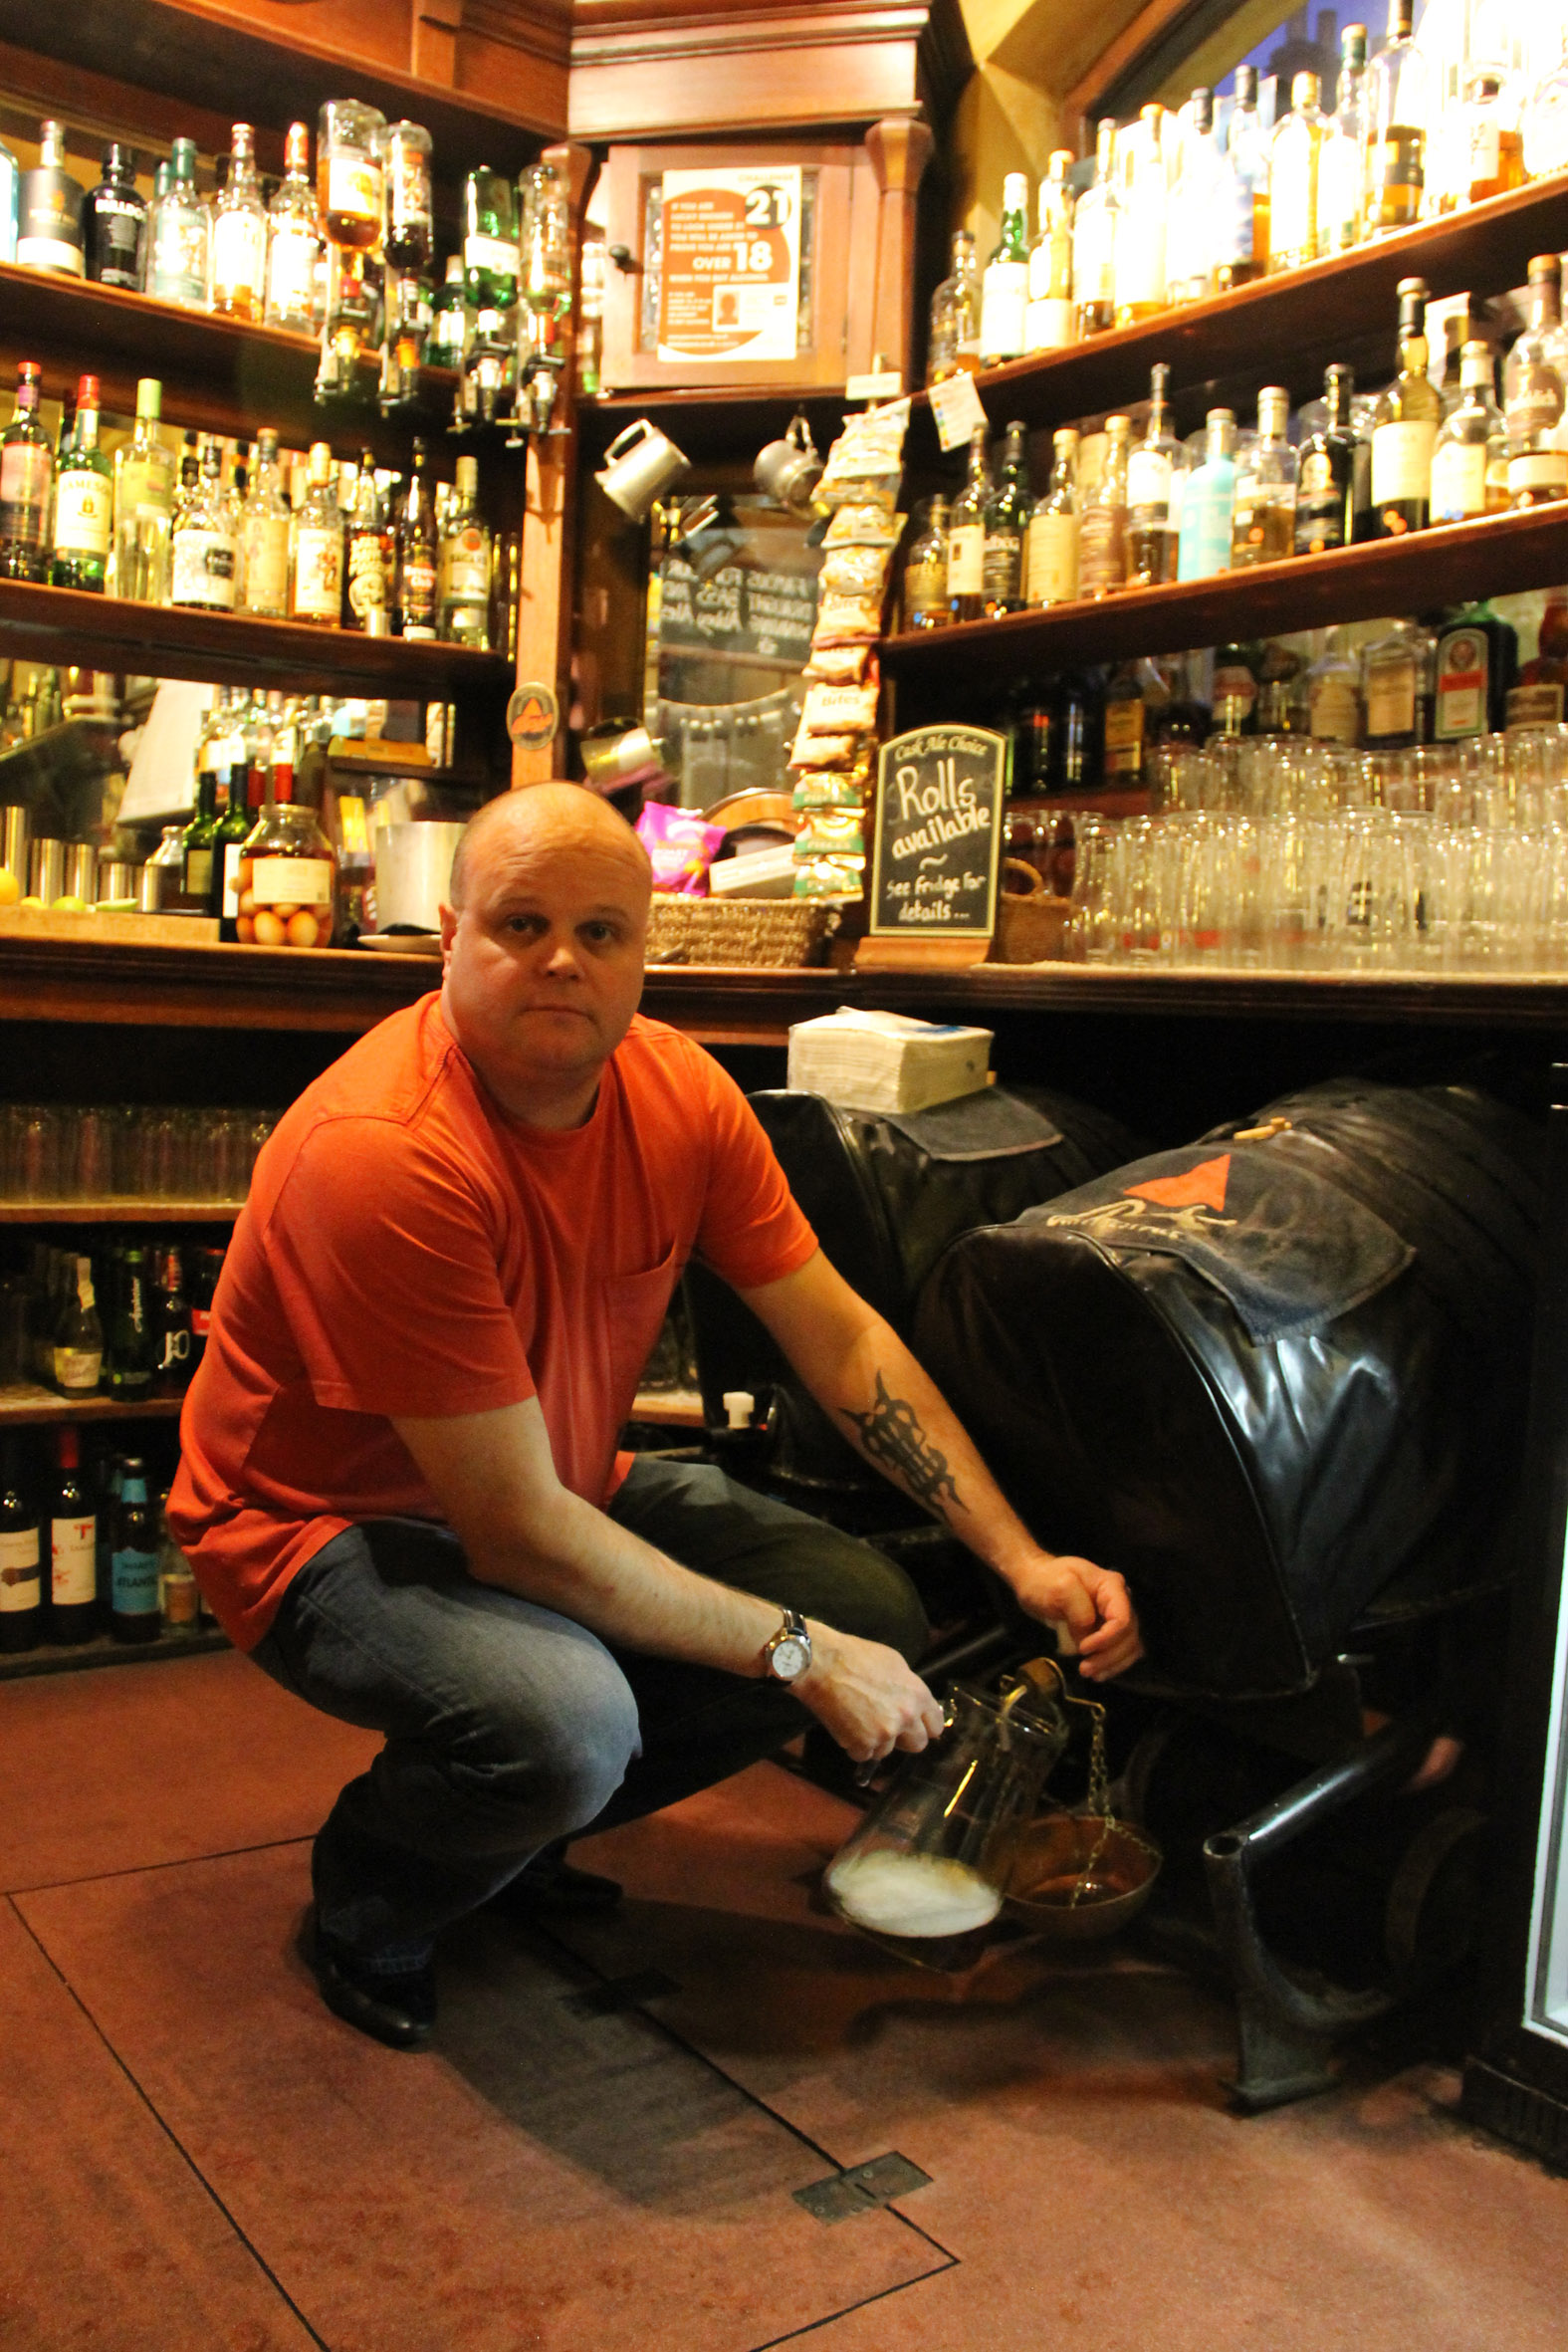 Paul Waters is usually happy serving beer - but here he sadly fills a jug from the barrel for almost the last time.